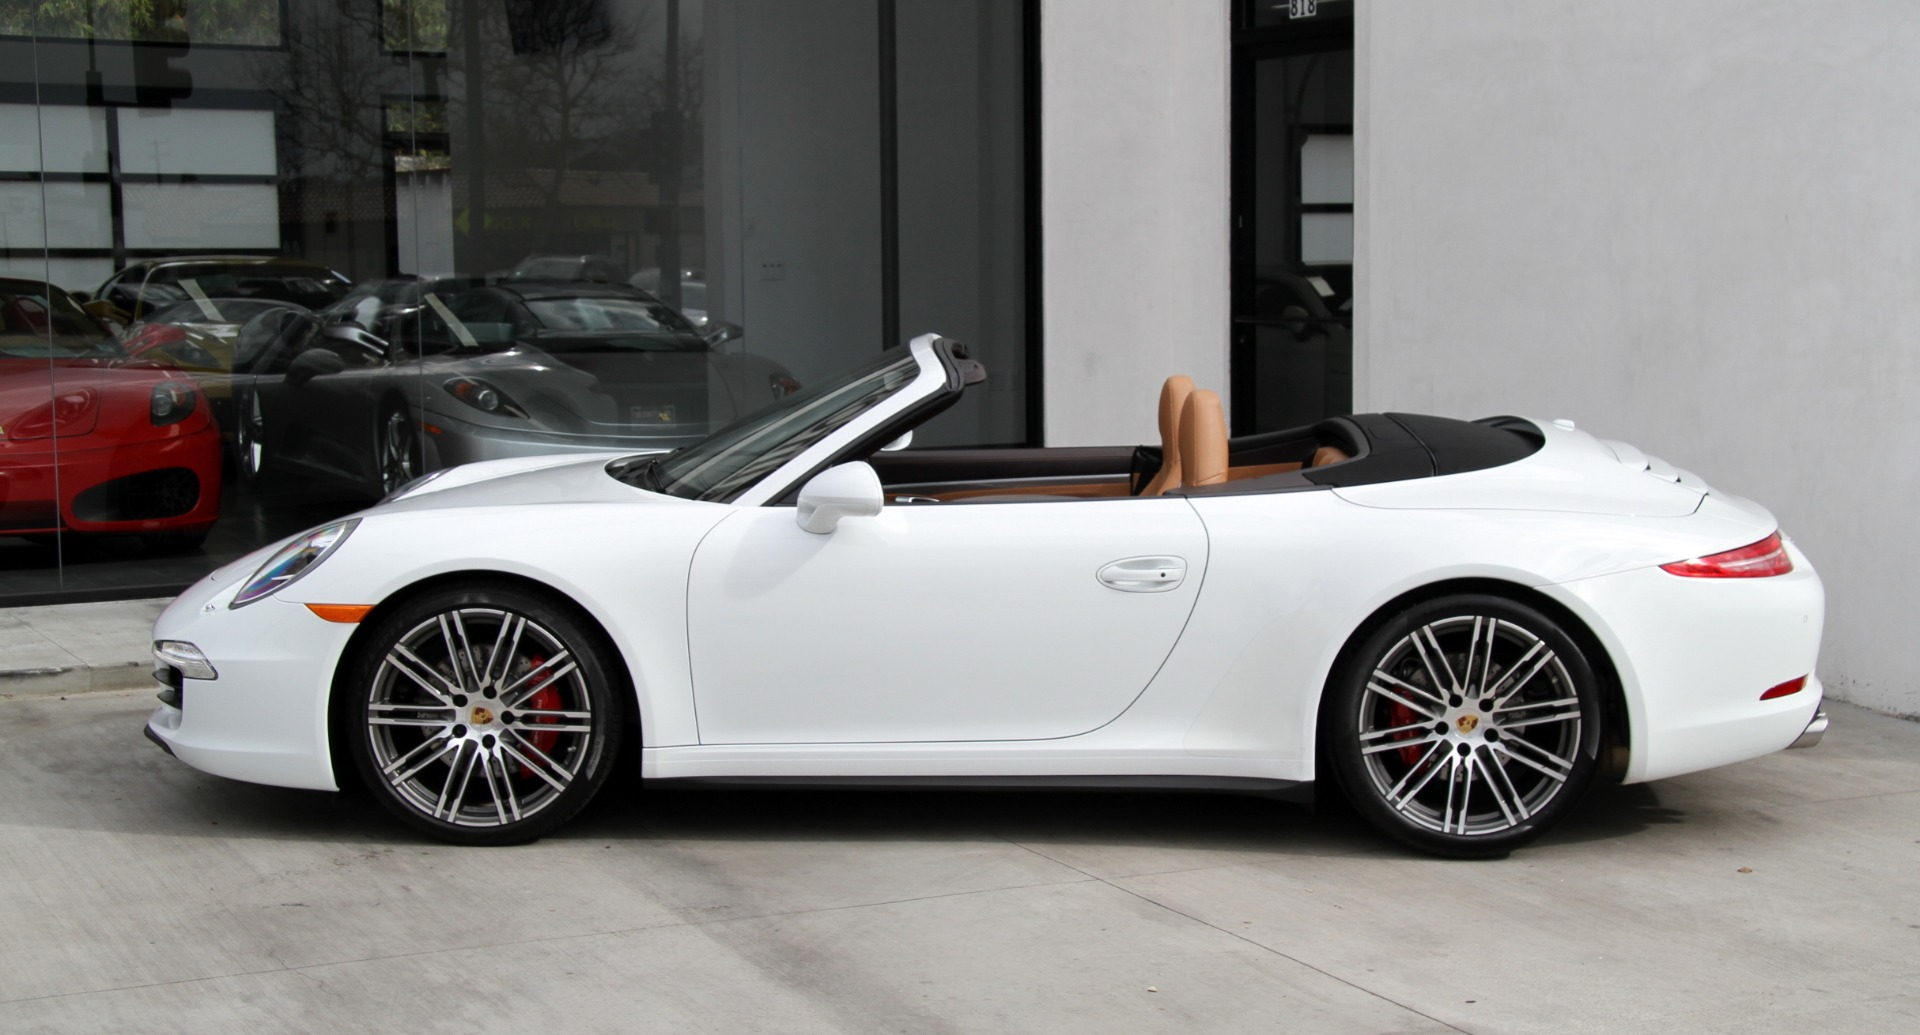 2015 Porsche 911 Carrera 4S ** MSRP $142,535 ** Stock # 6098 for sale near Redondo Beach, CA ...